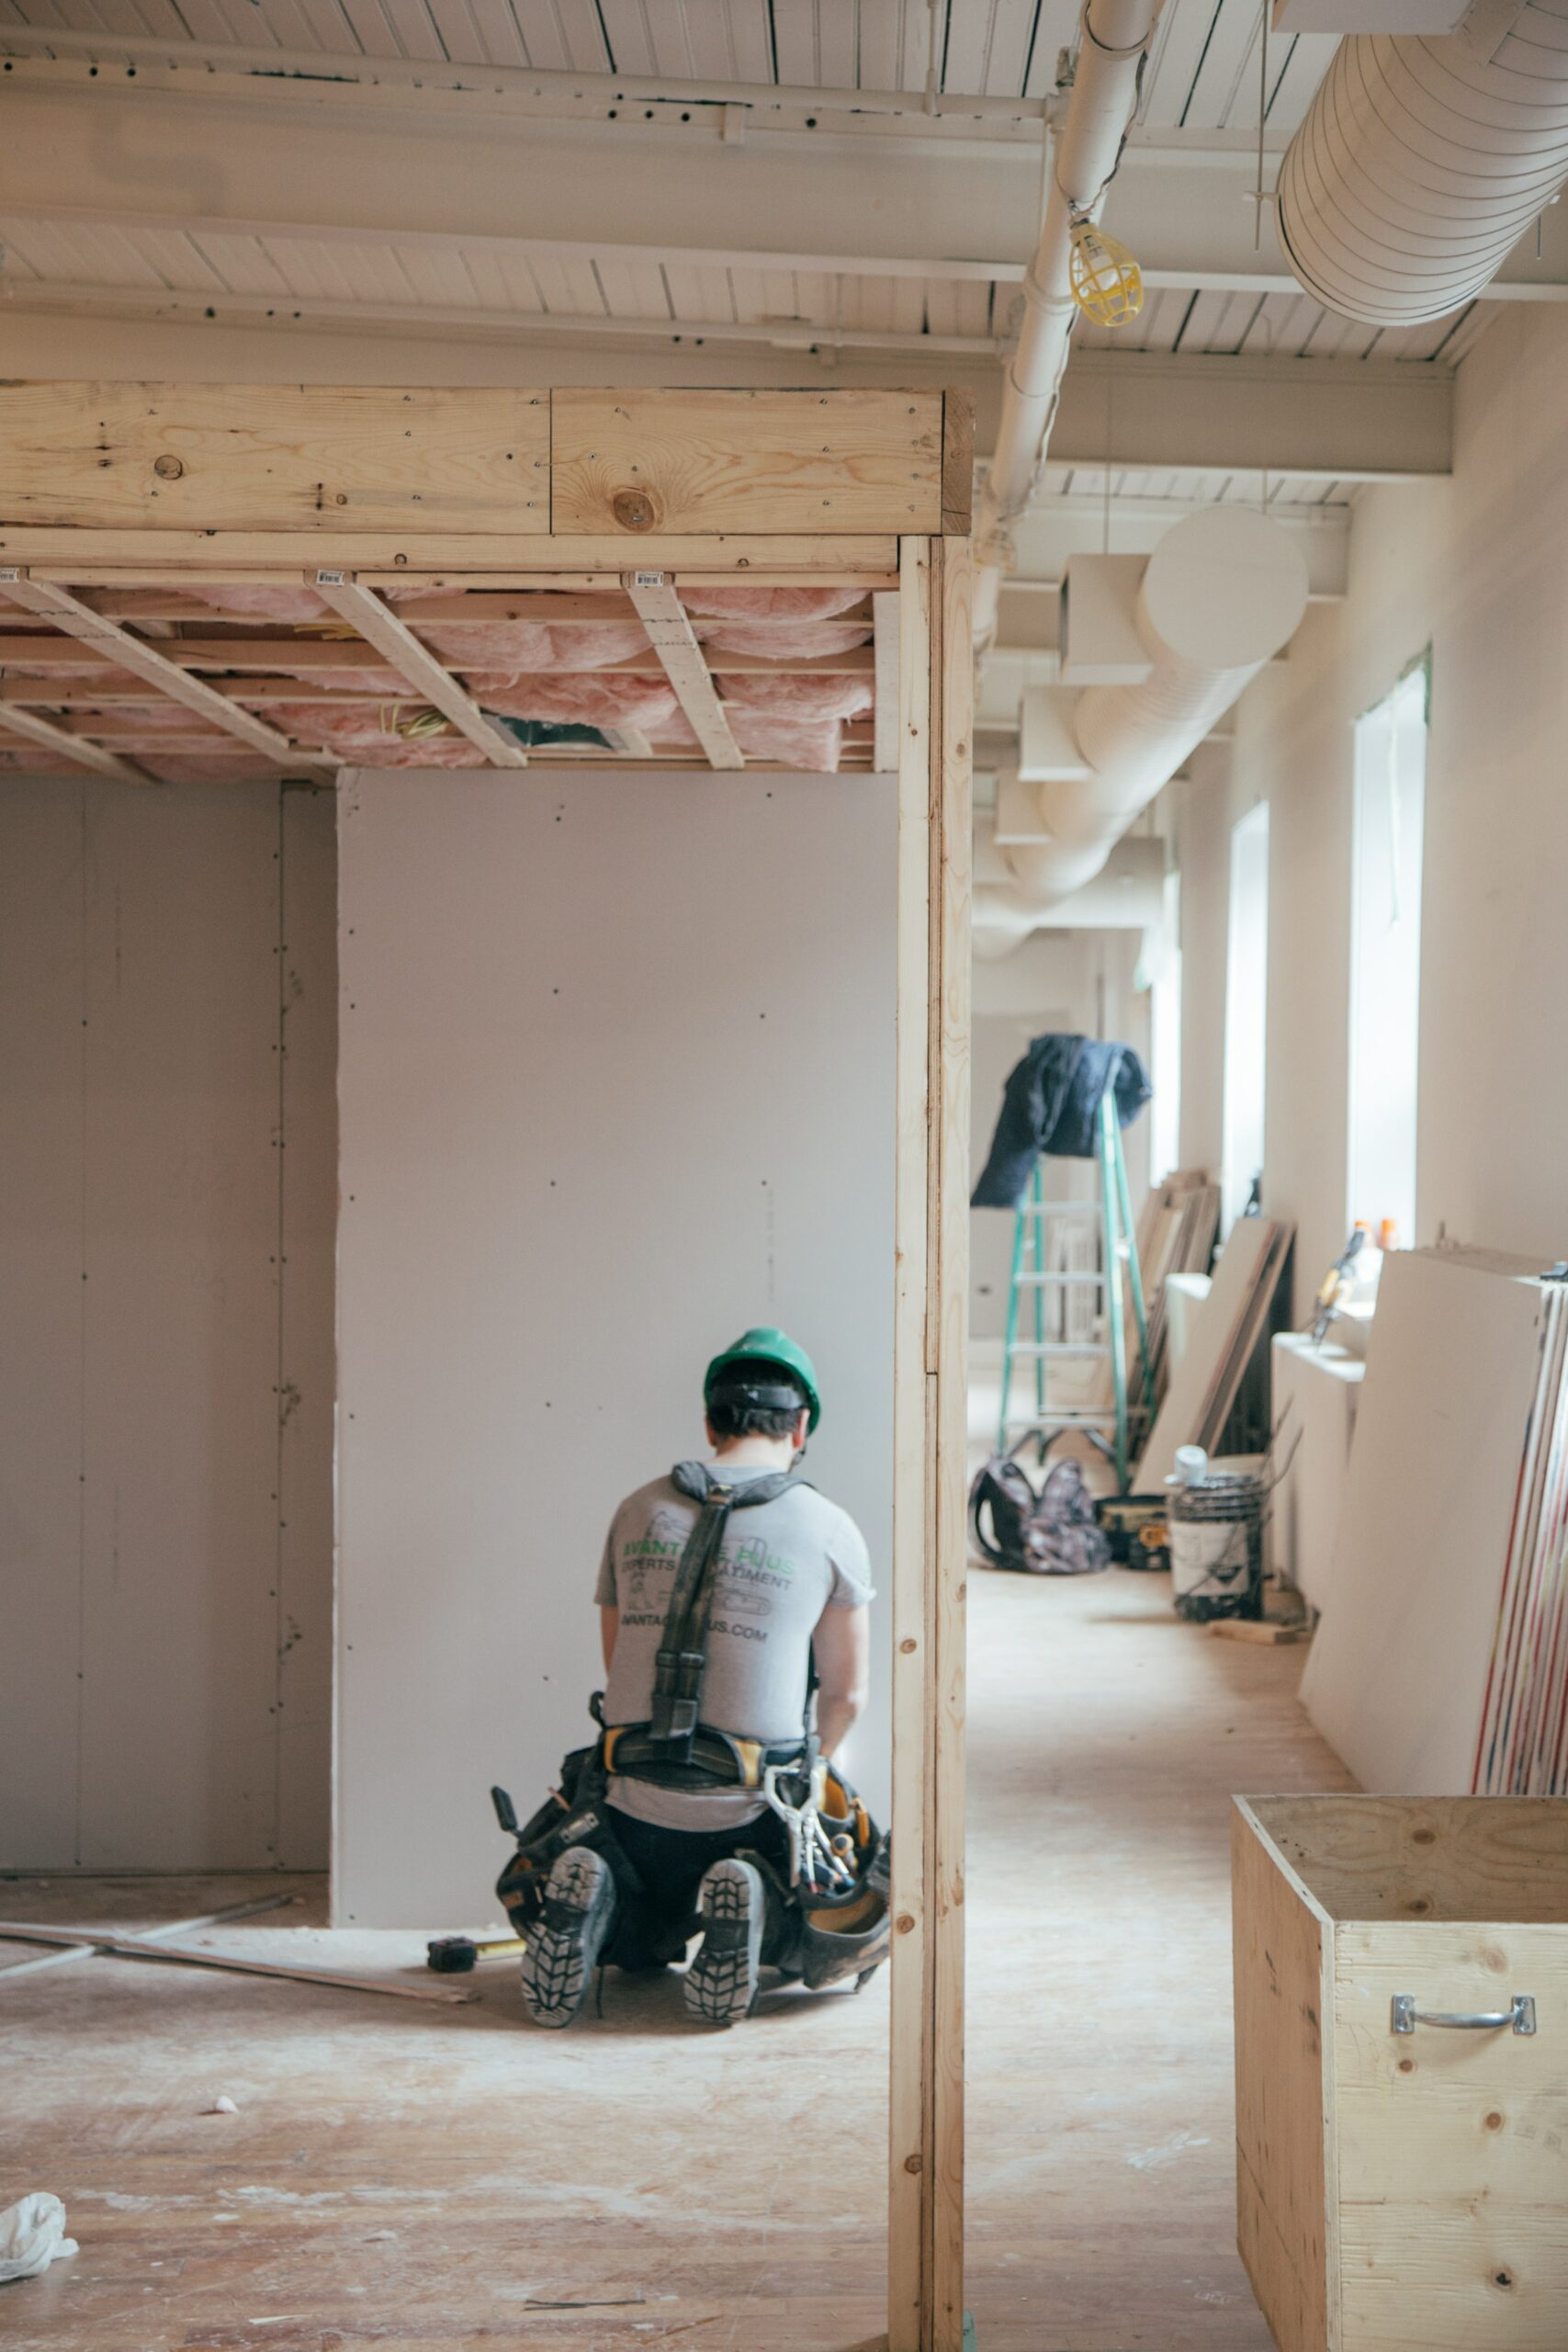 Does your contractor carry worker's compensation and general liability insurance?